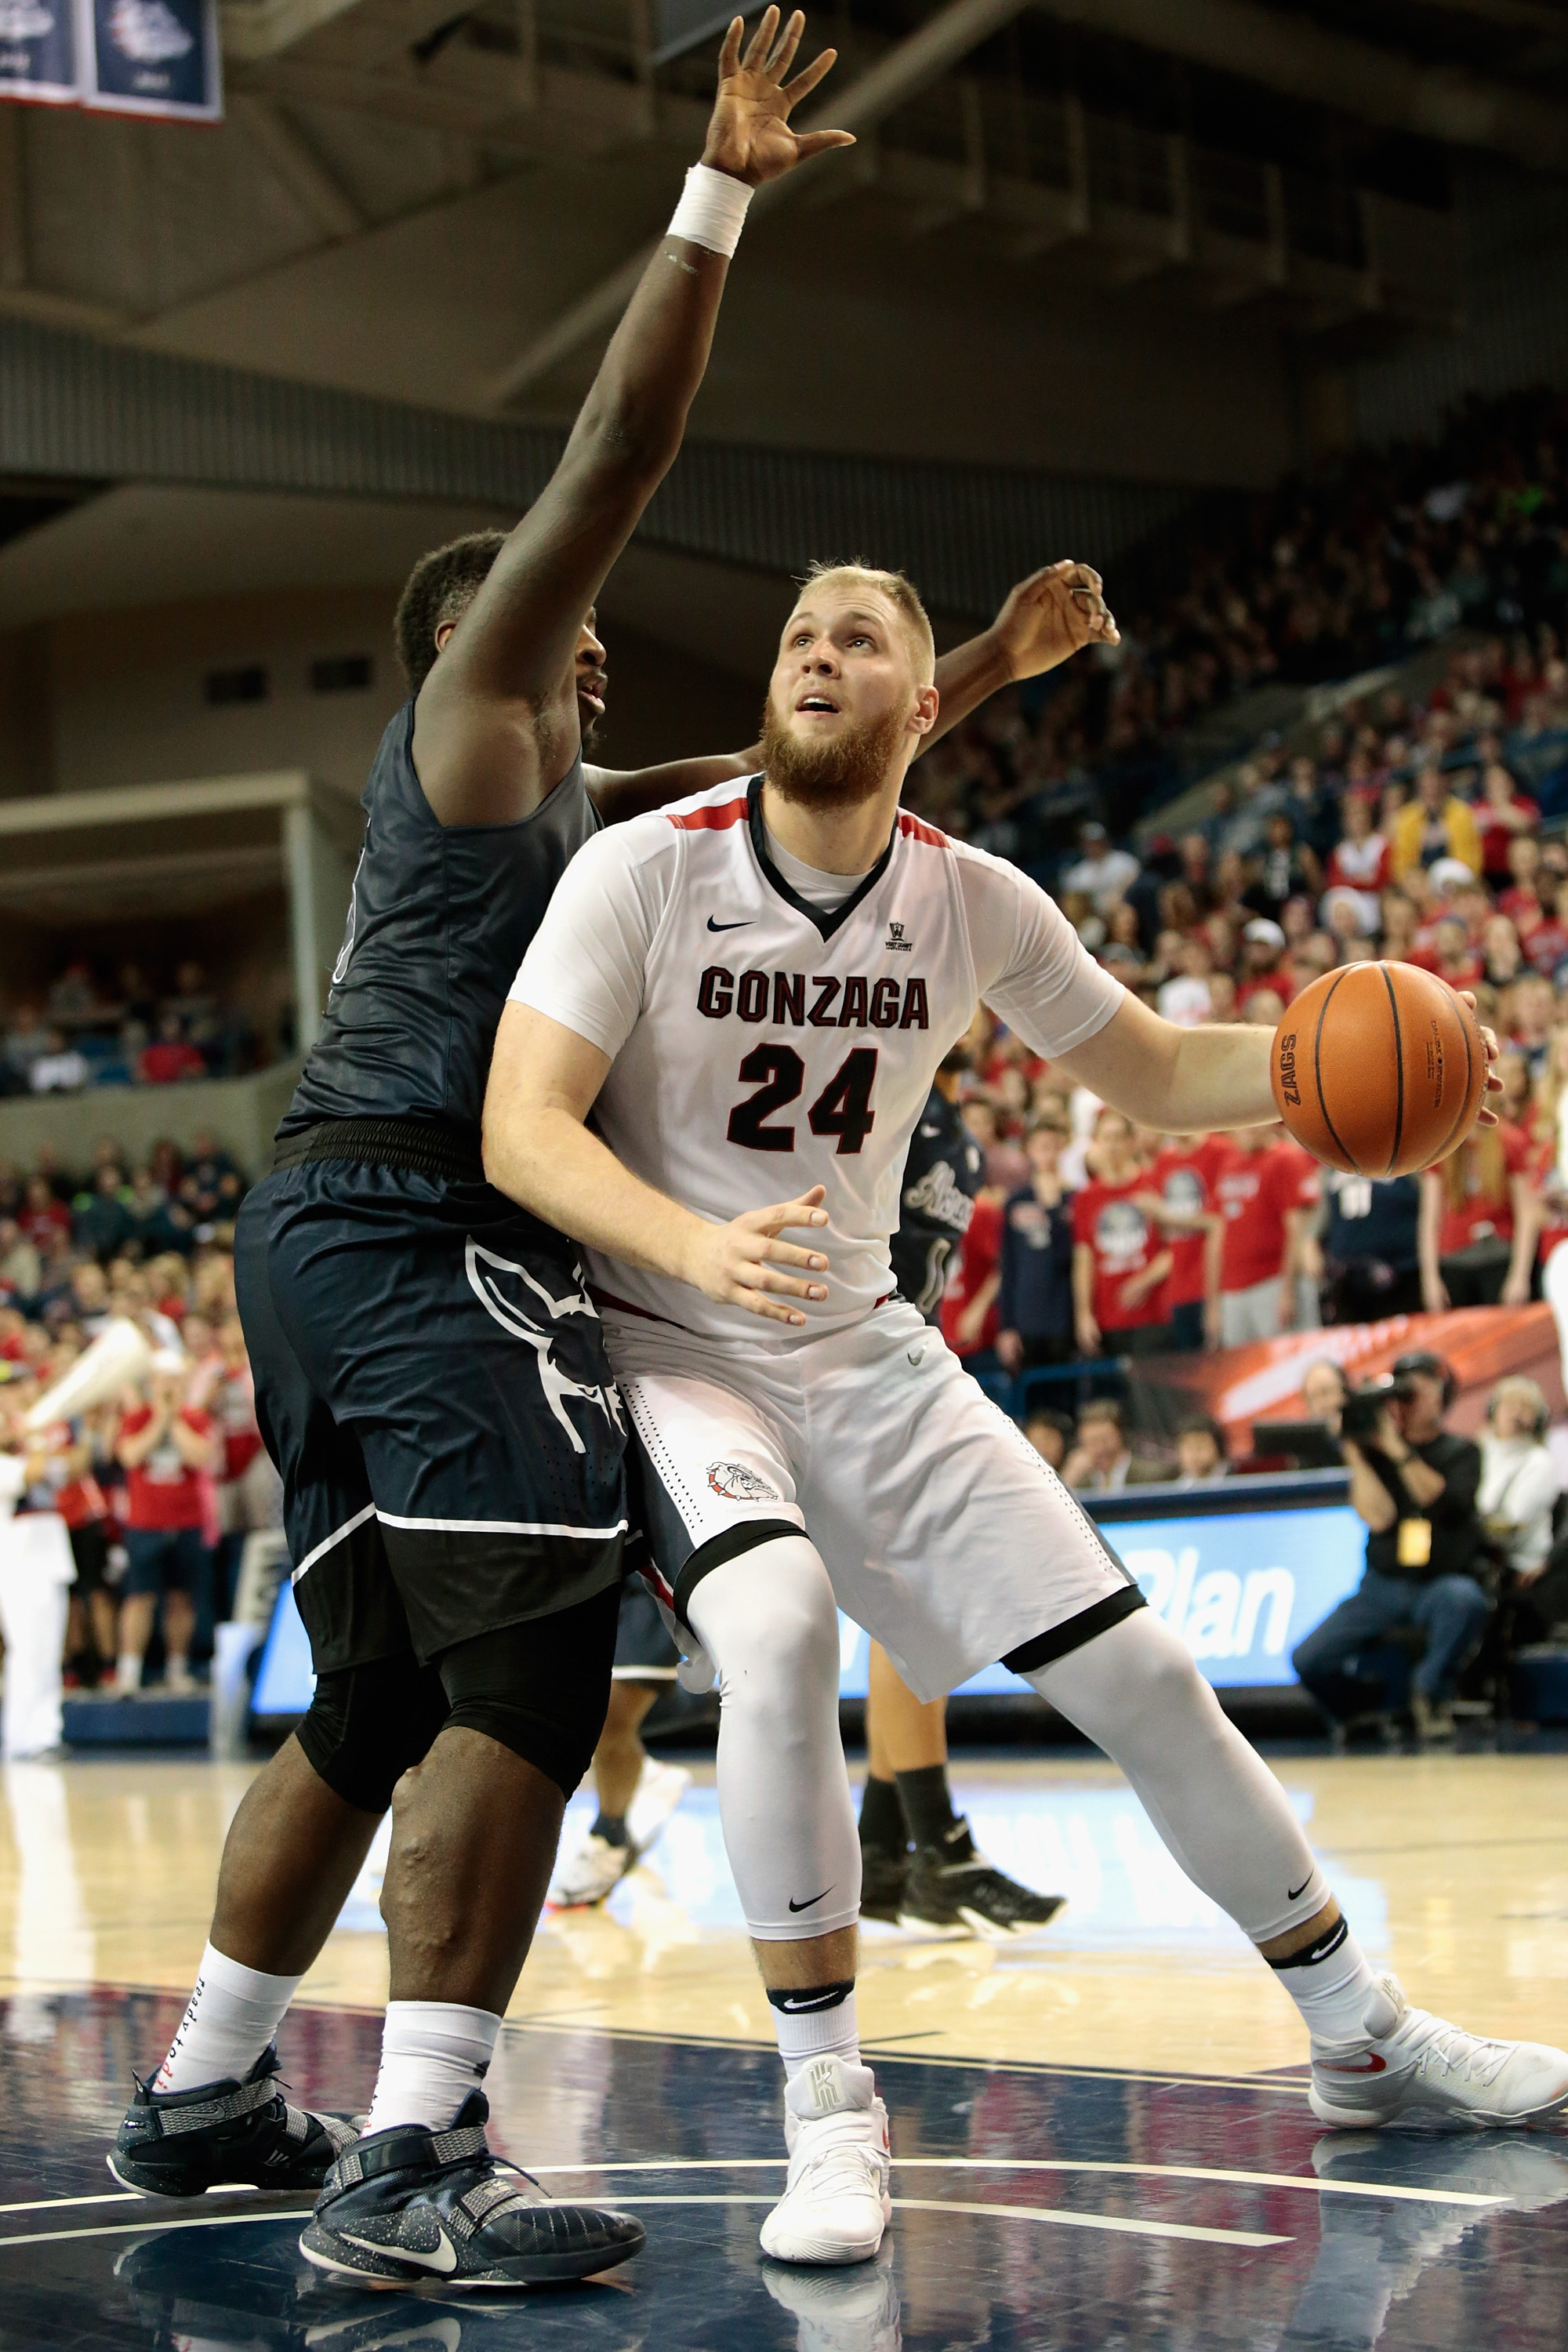 Akron's Isaiah 'Big Dog' Johnson defends against Gonzaga on Dec. 10, (Photo by William Mancebo/Getty Images)